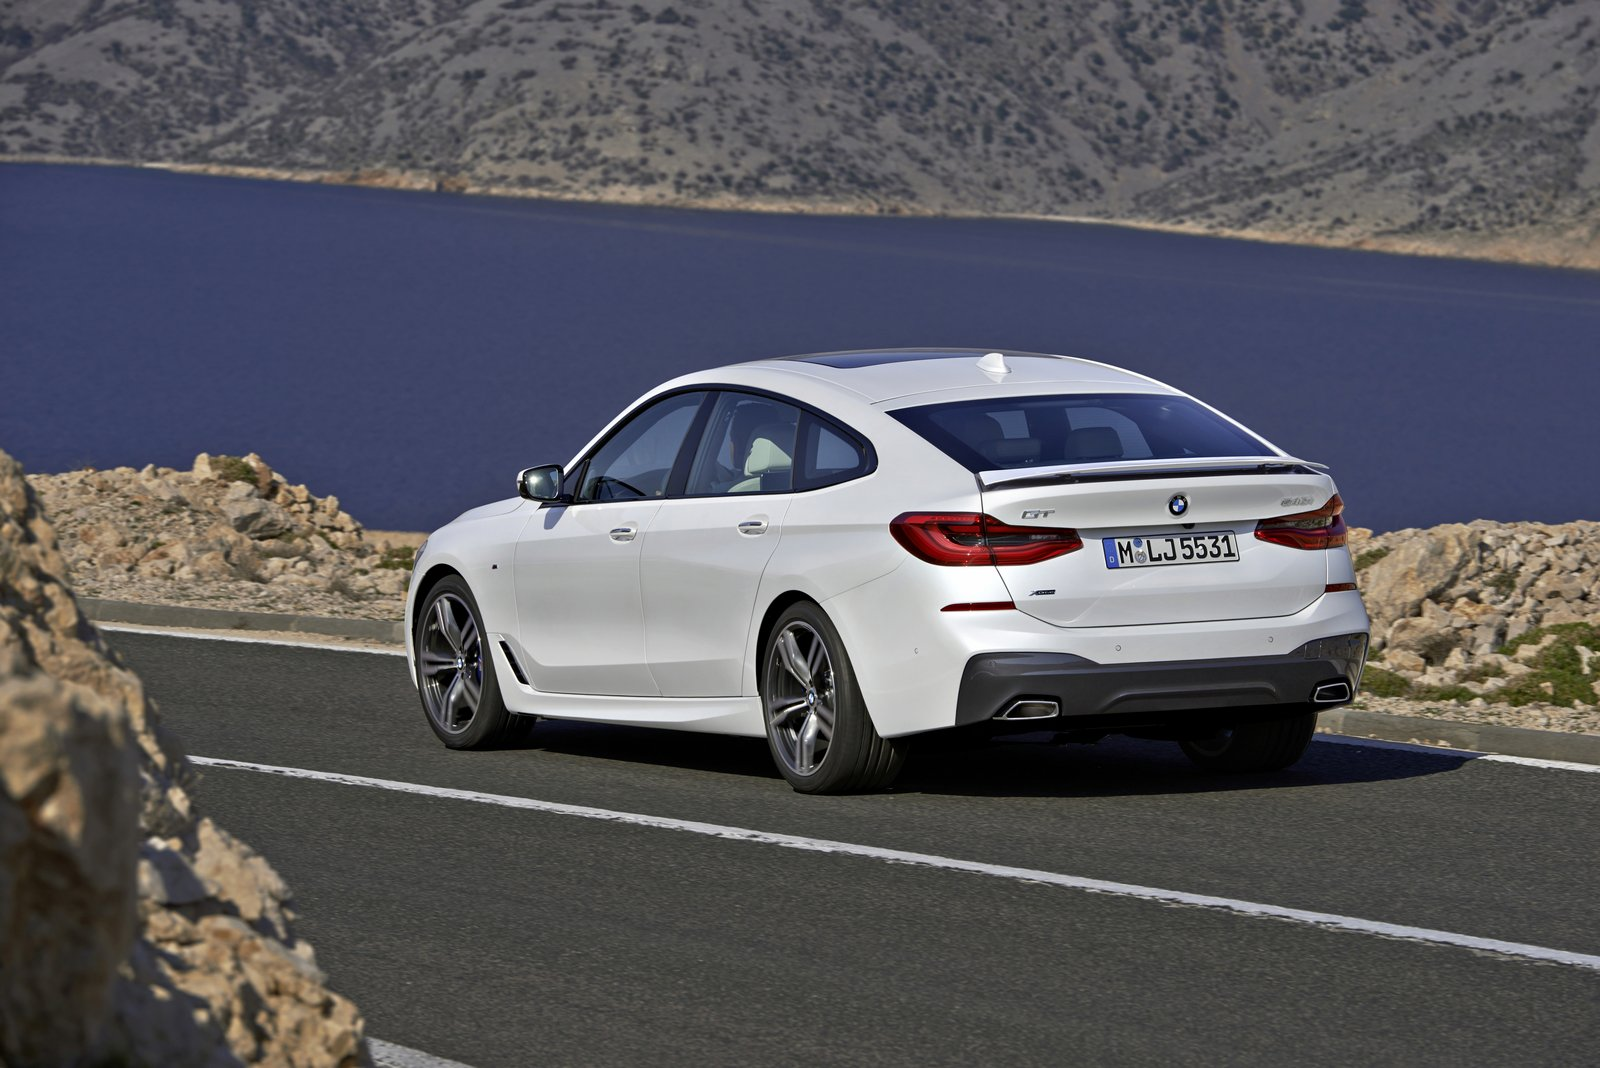 2018 bmw 6 series gran turismo officially debuts 640i gt costs 70 000 autoevolution. Black Bedroom Furniture Sets. Home Design Ideas